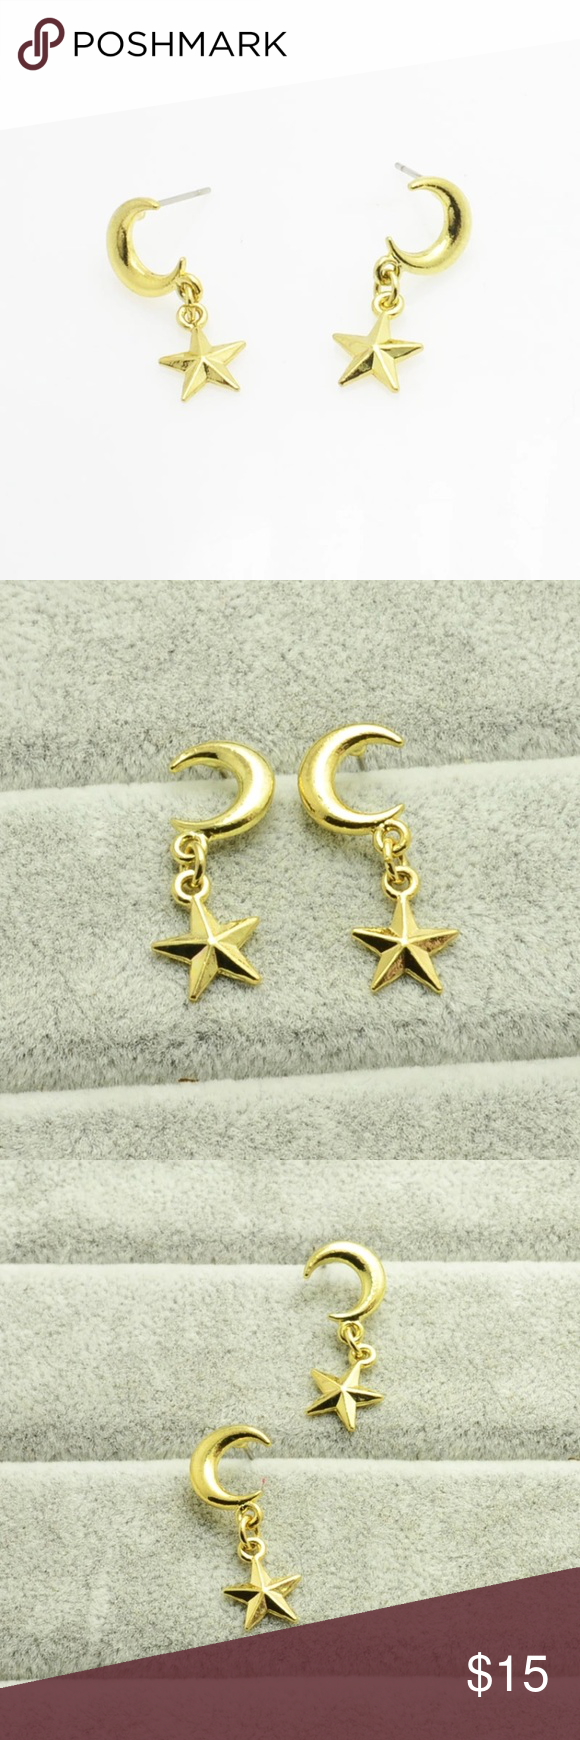 🔥 Moon star stud earrings Yellow gold plated moon star stud earrings Jewelry Earrings